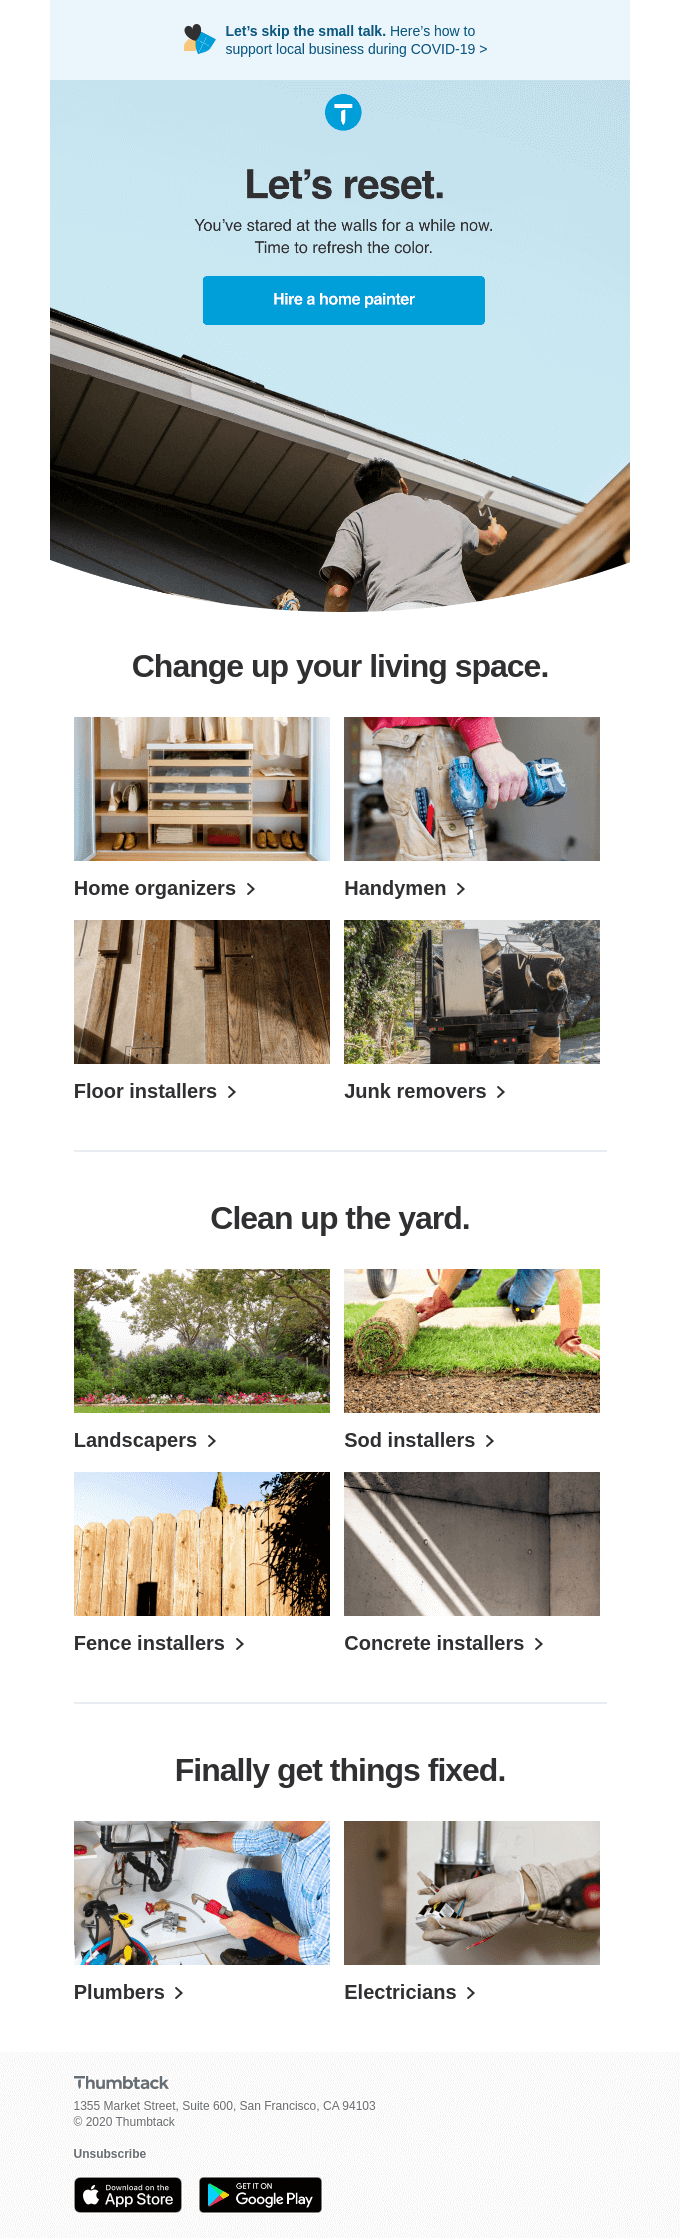 Home projects you can finally get done